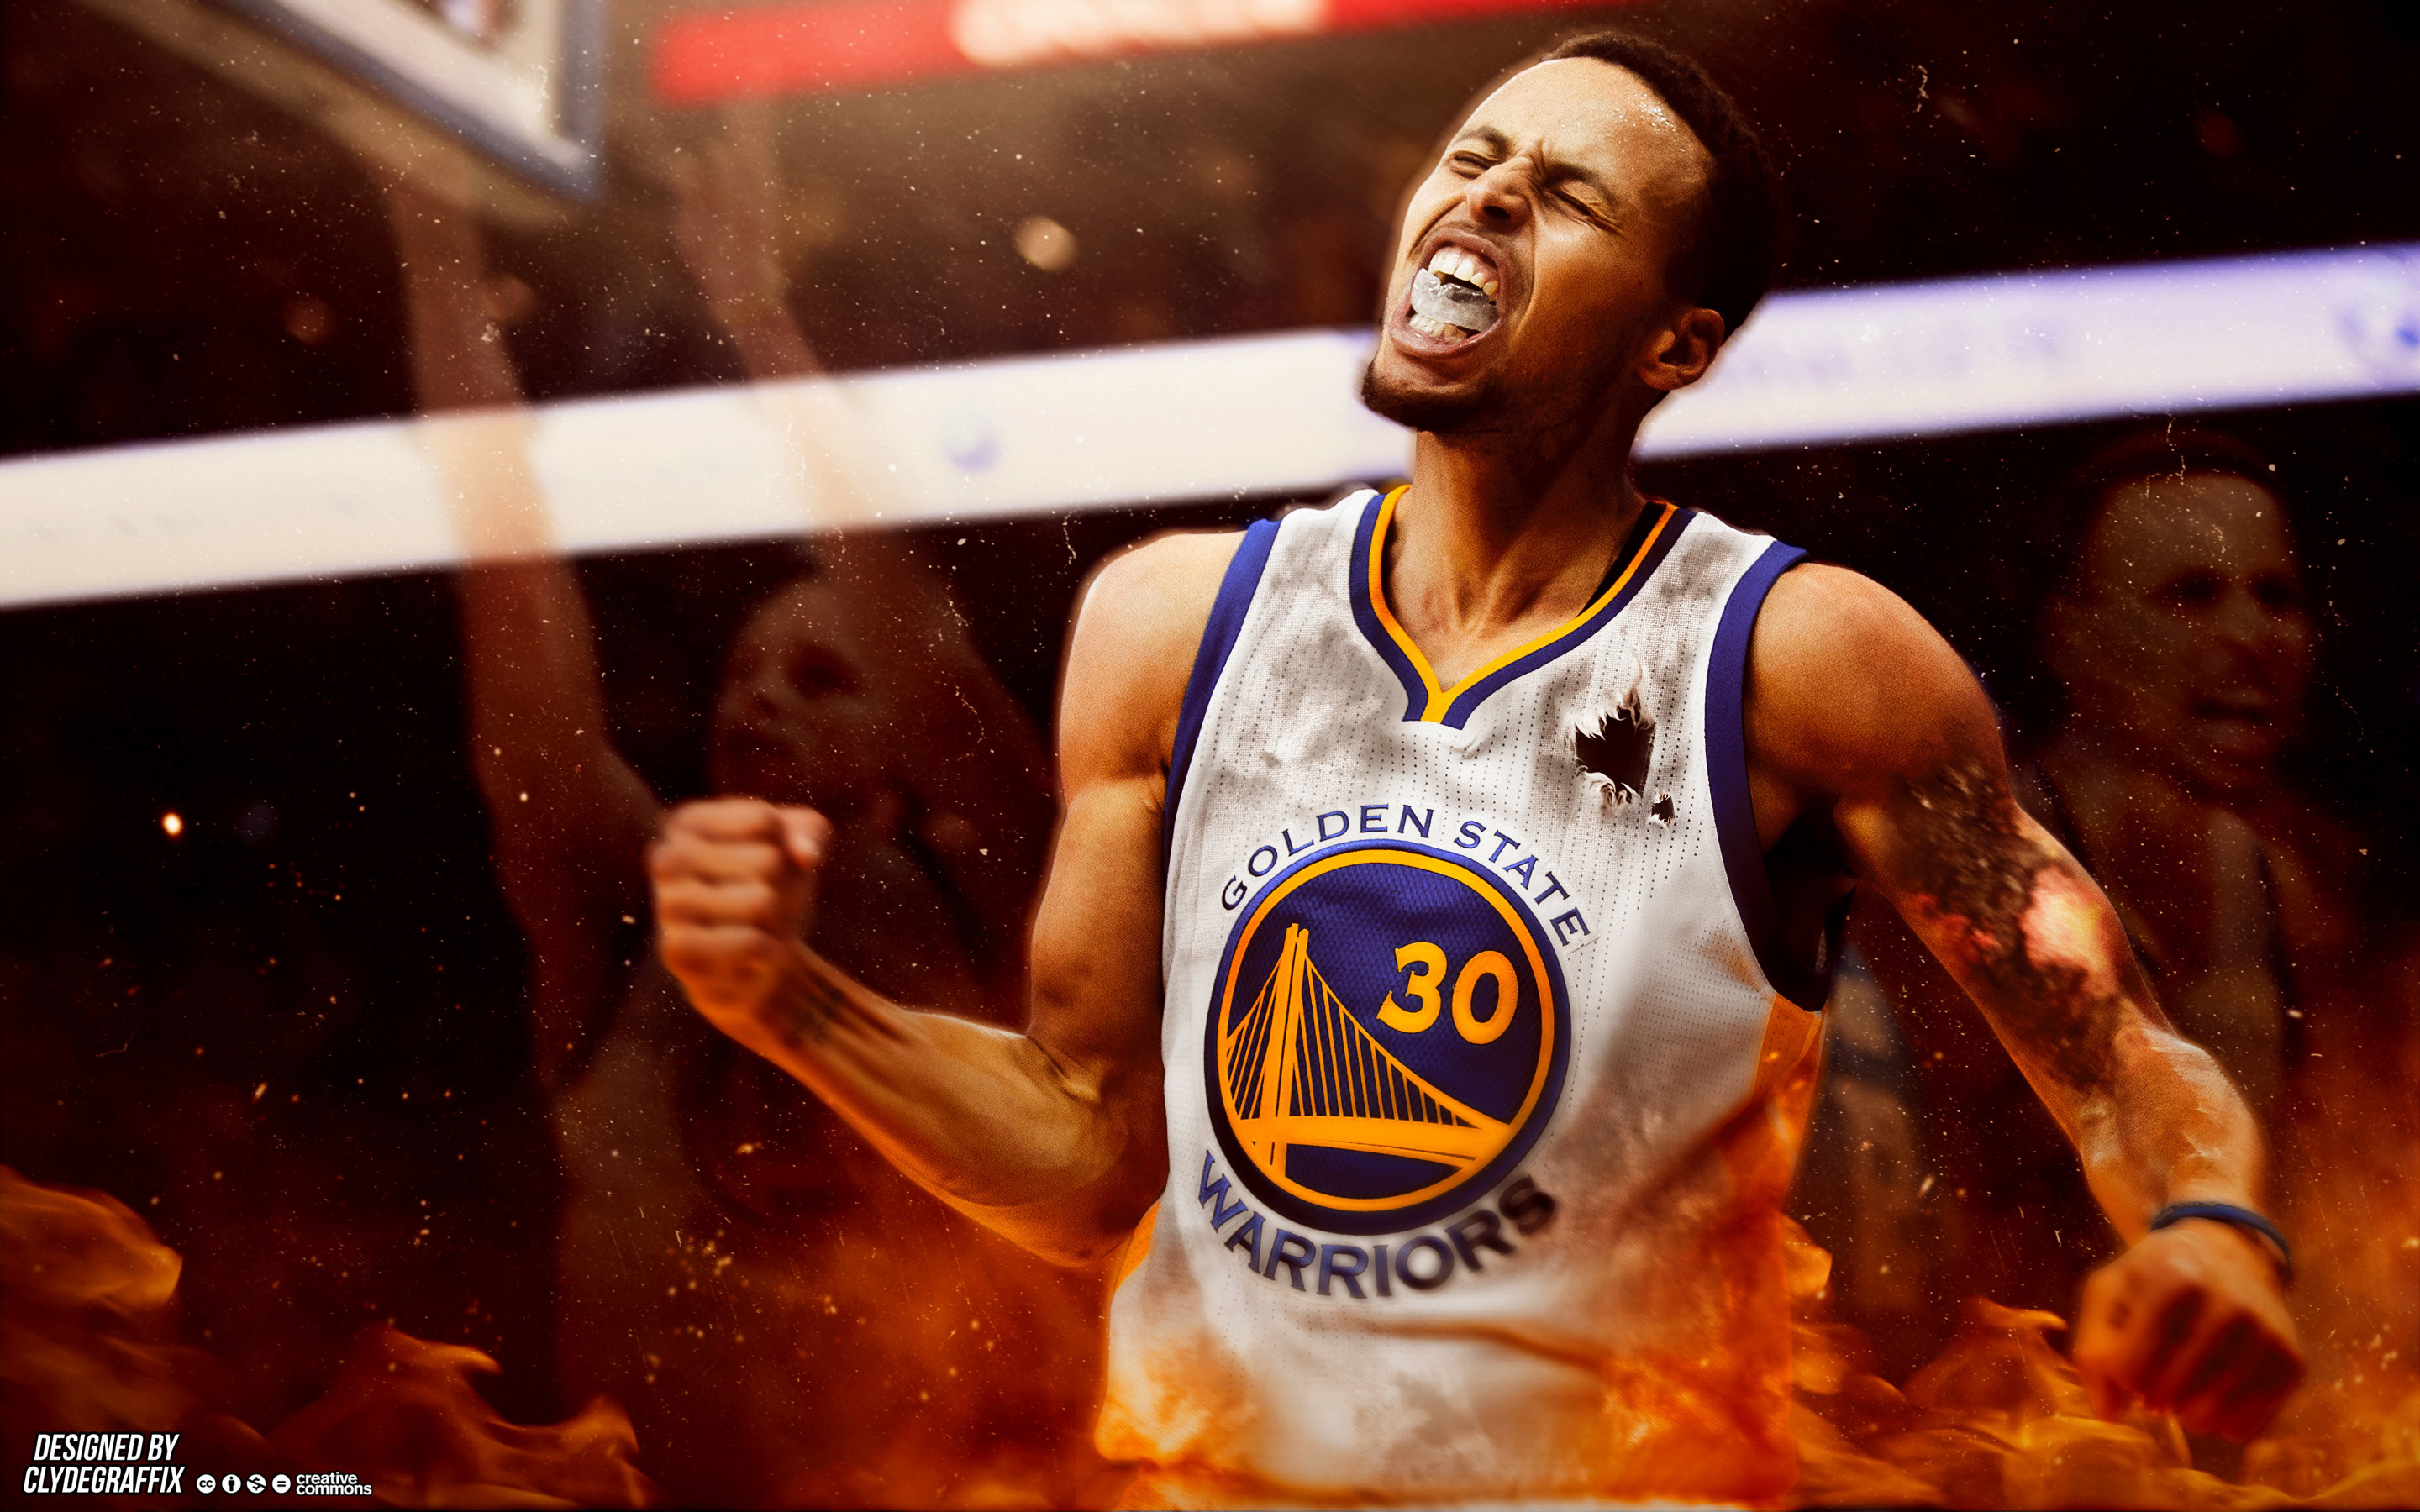 Kd Quotes Wallpaper Stephen Curry Wallpaper Hd 2017 82 Images